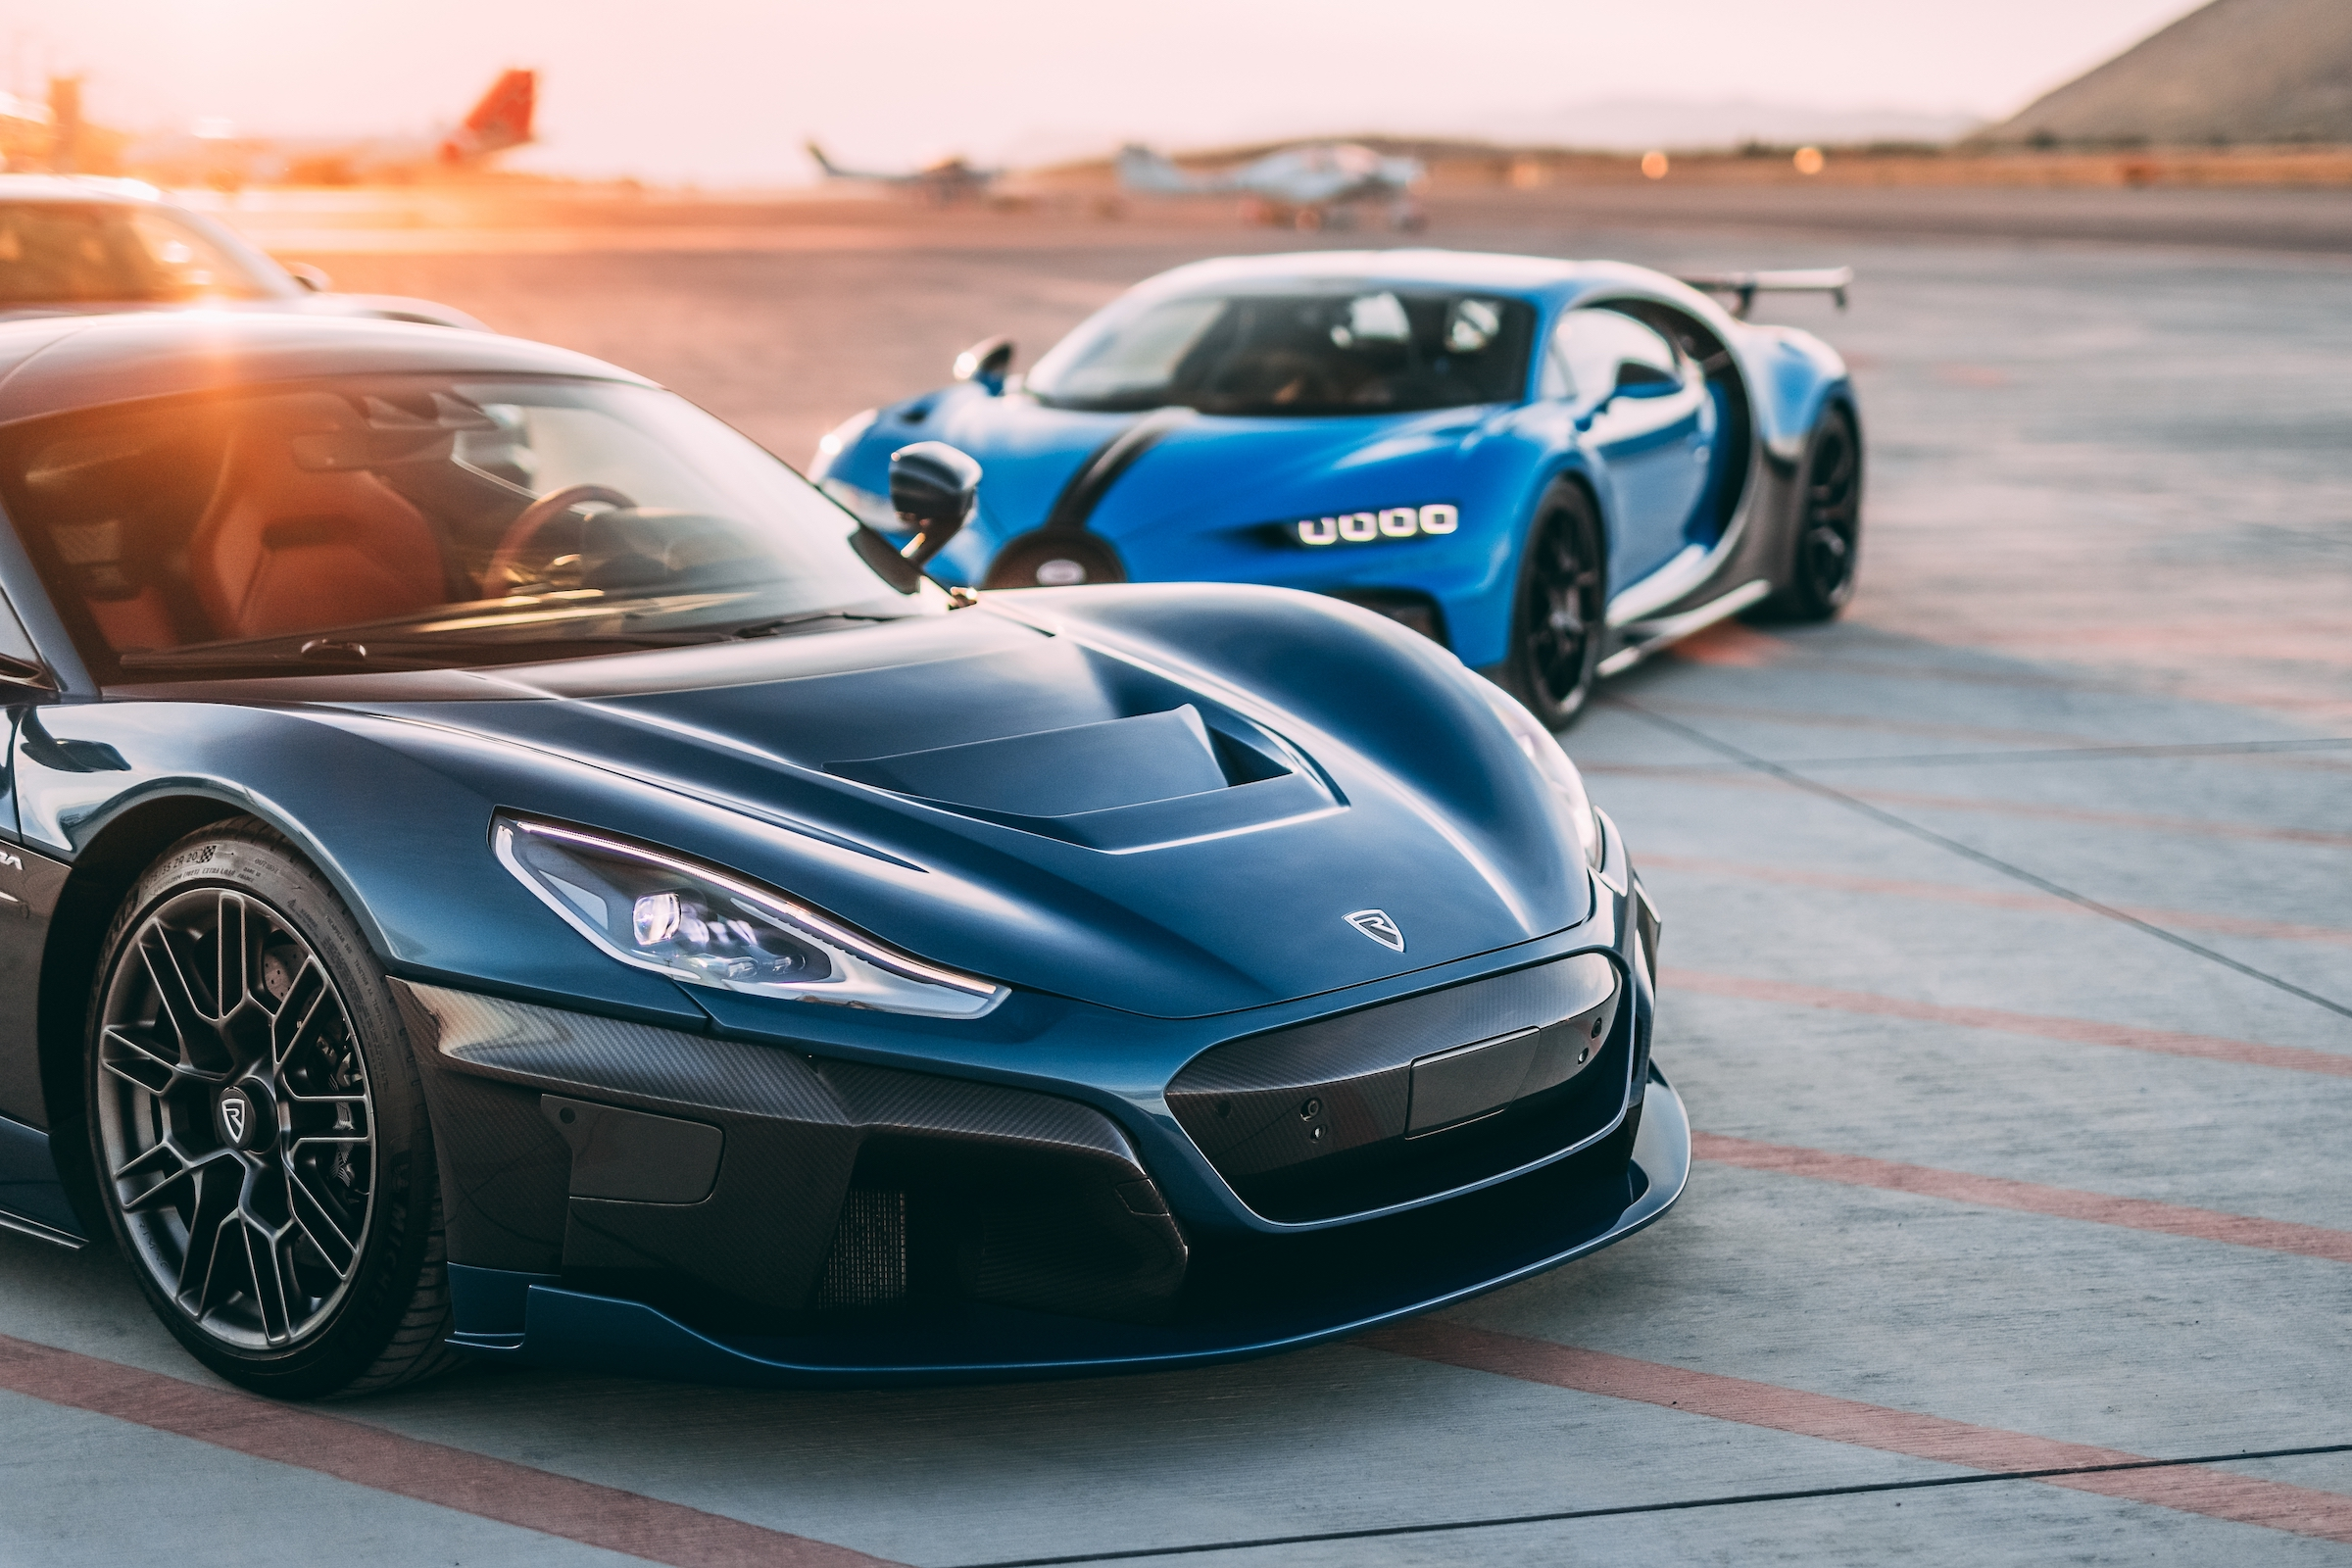 Bugatti Rimac: Old and new worlds combine to form supercar giant